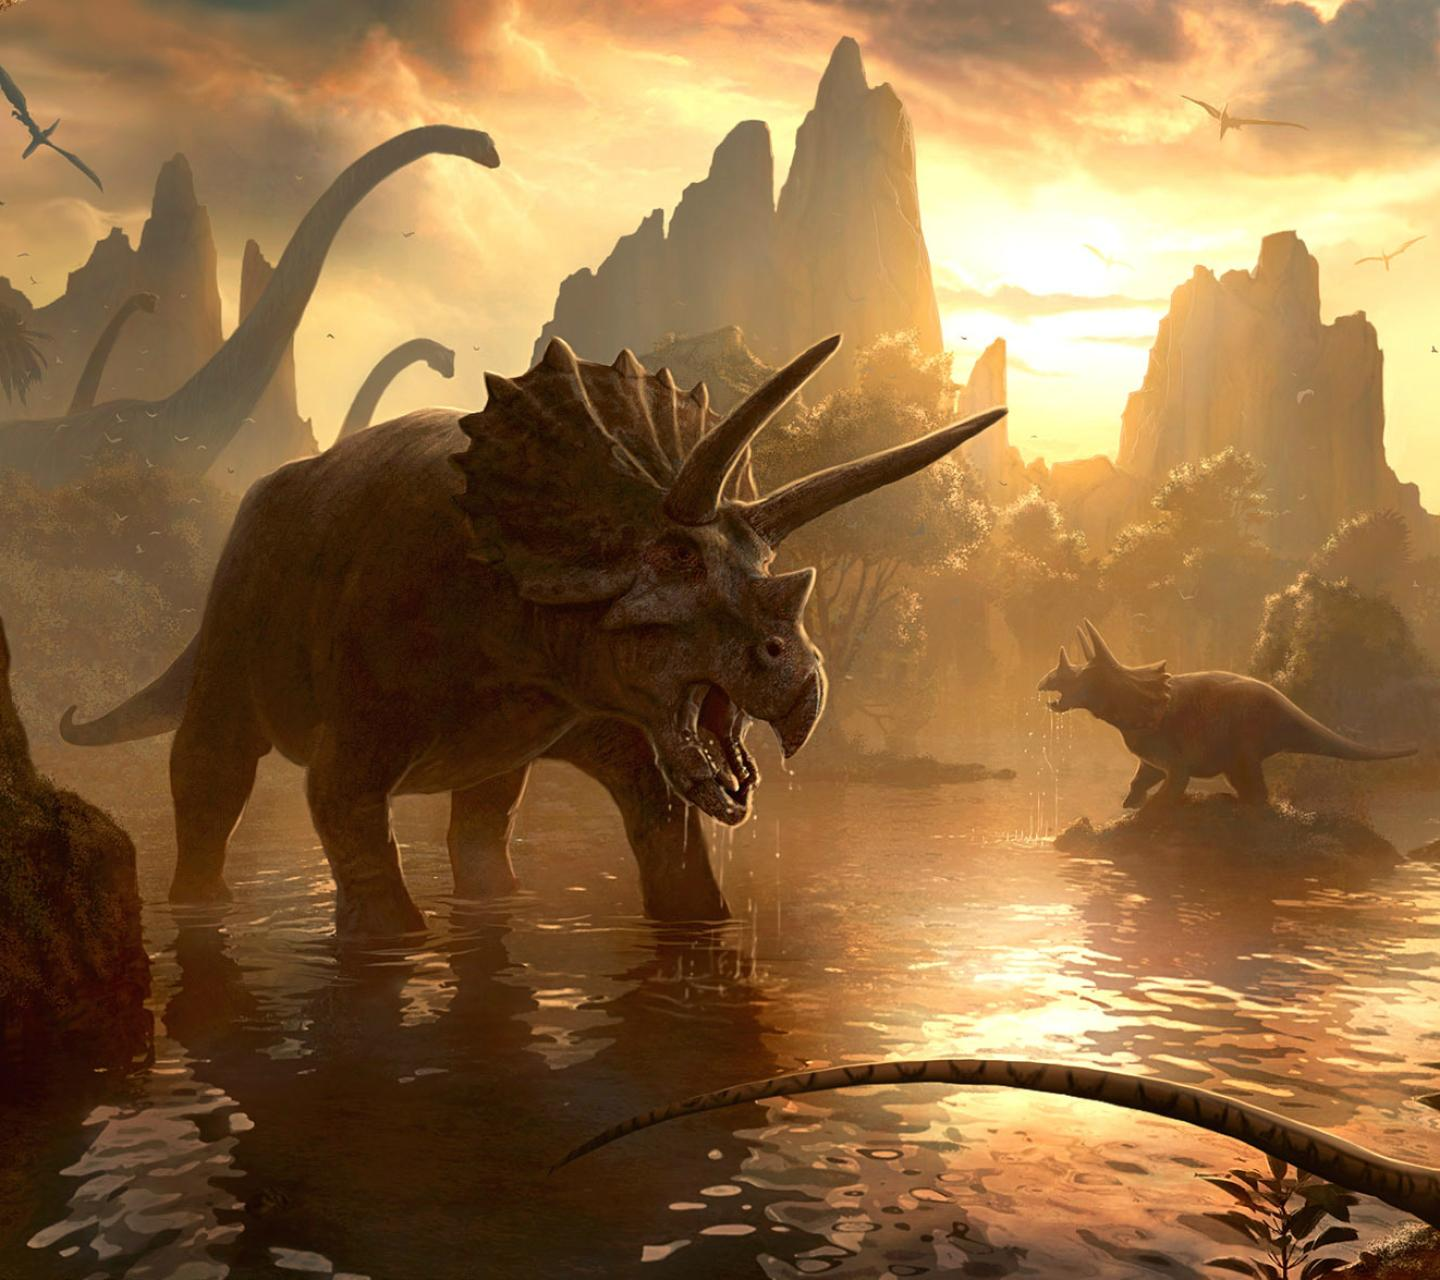 Triceratops Wallpaper by NewAgeMan17 - 27 - Free on ZEDGE™